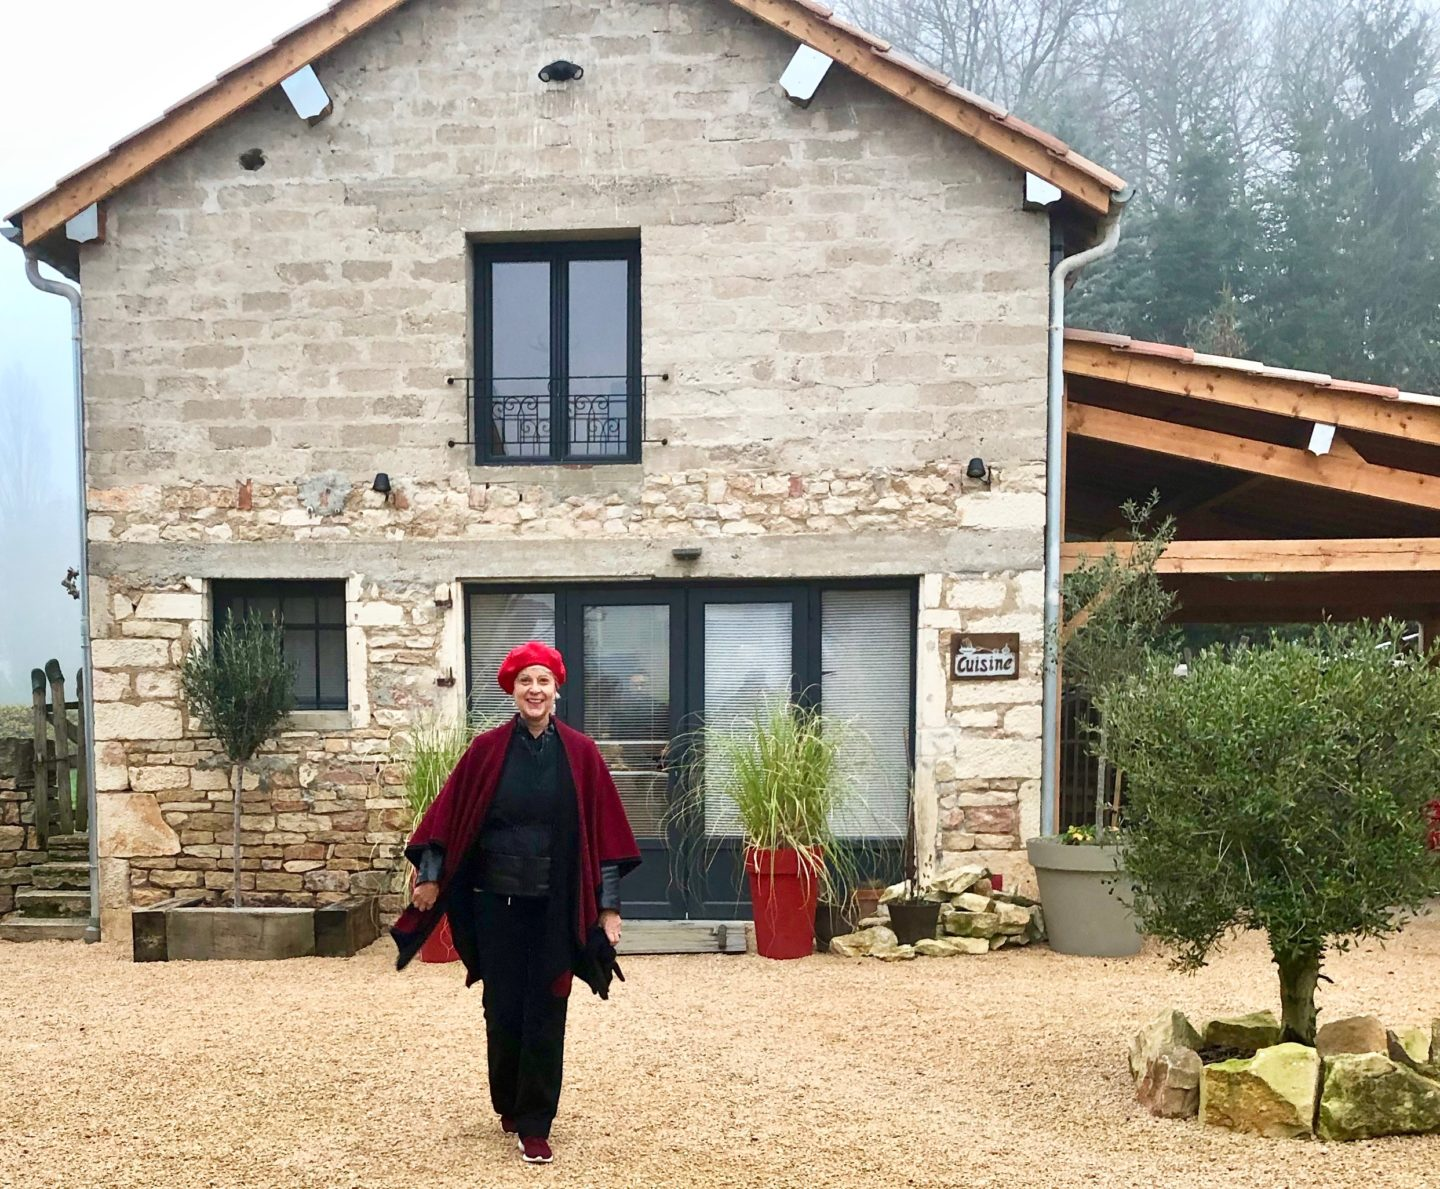 Overnight stay at Chamber d'hôte Burgundy wool poncho